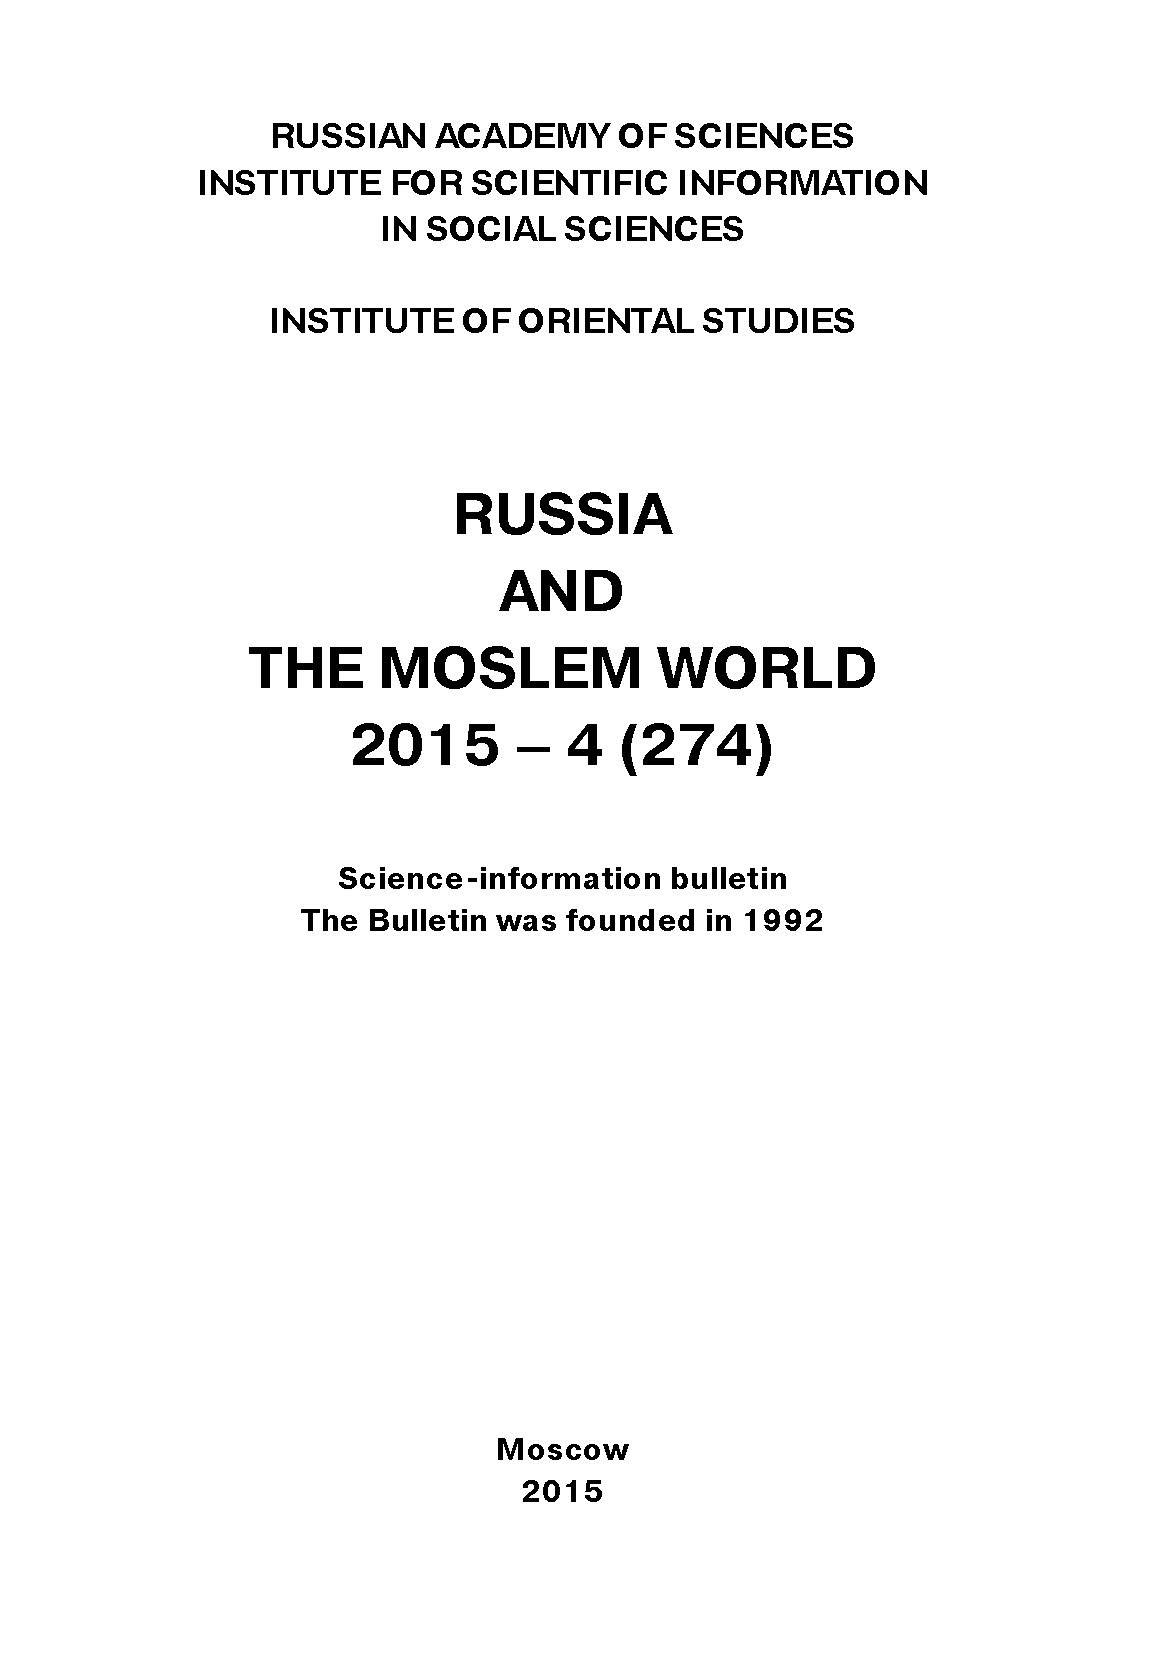 Сборник статей Russia and the Moslem World № 04 / 2015 сборник статей russia and the moslem world 04 2011